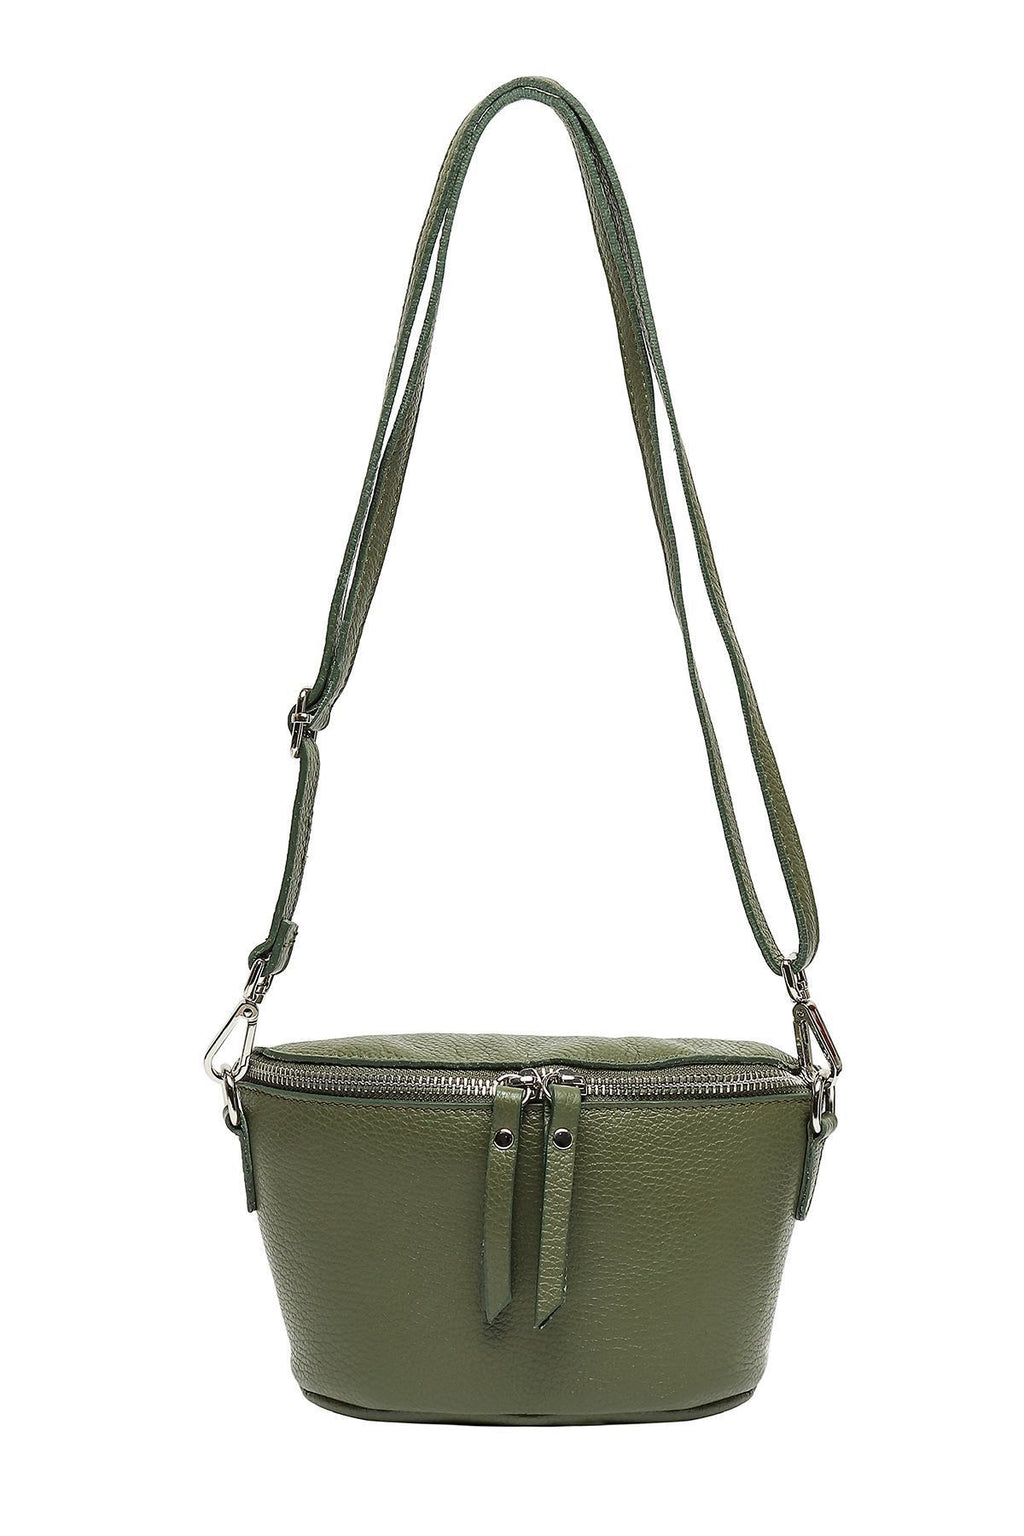 Cherry Paris - Emmanuelle bag khaki green